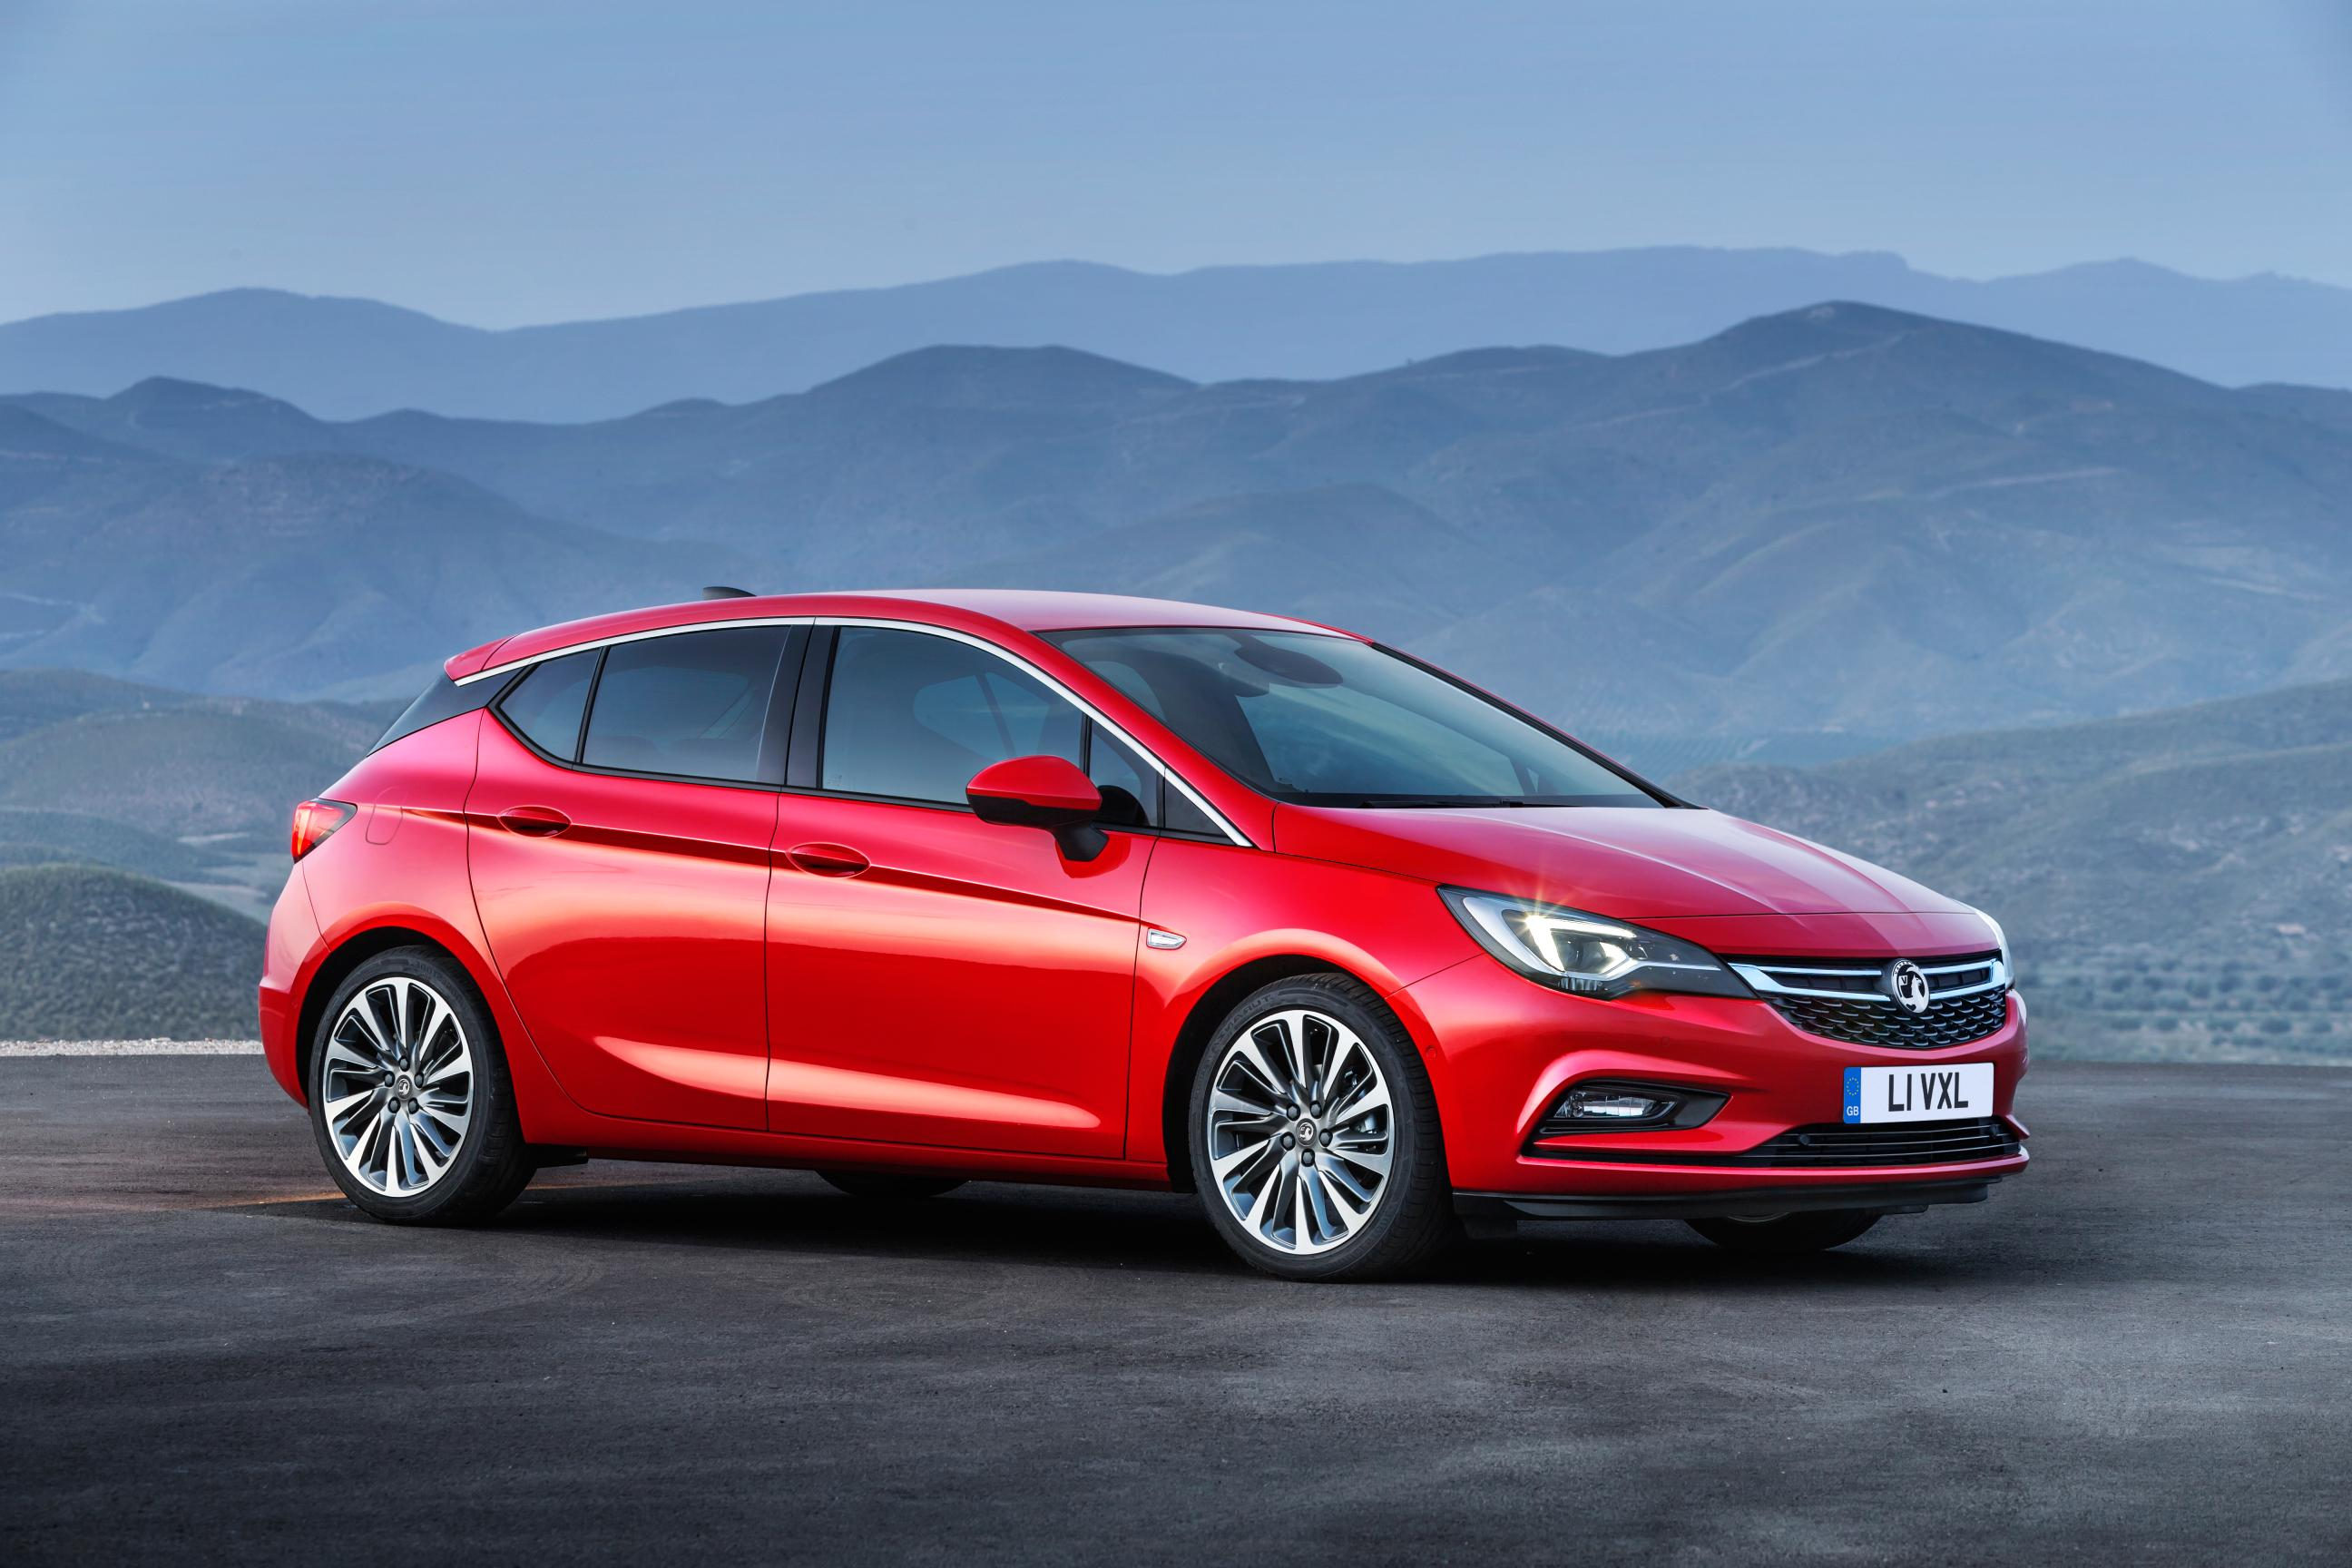 Opel Astra Wallpapers - Top Free Opel Astra Backgrounds - WallpaperAccess